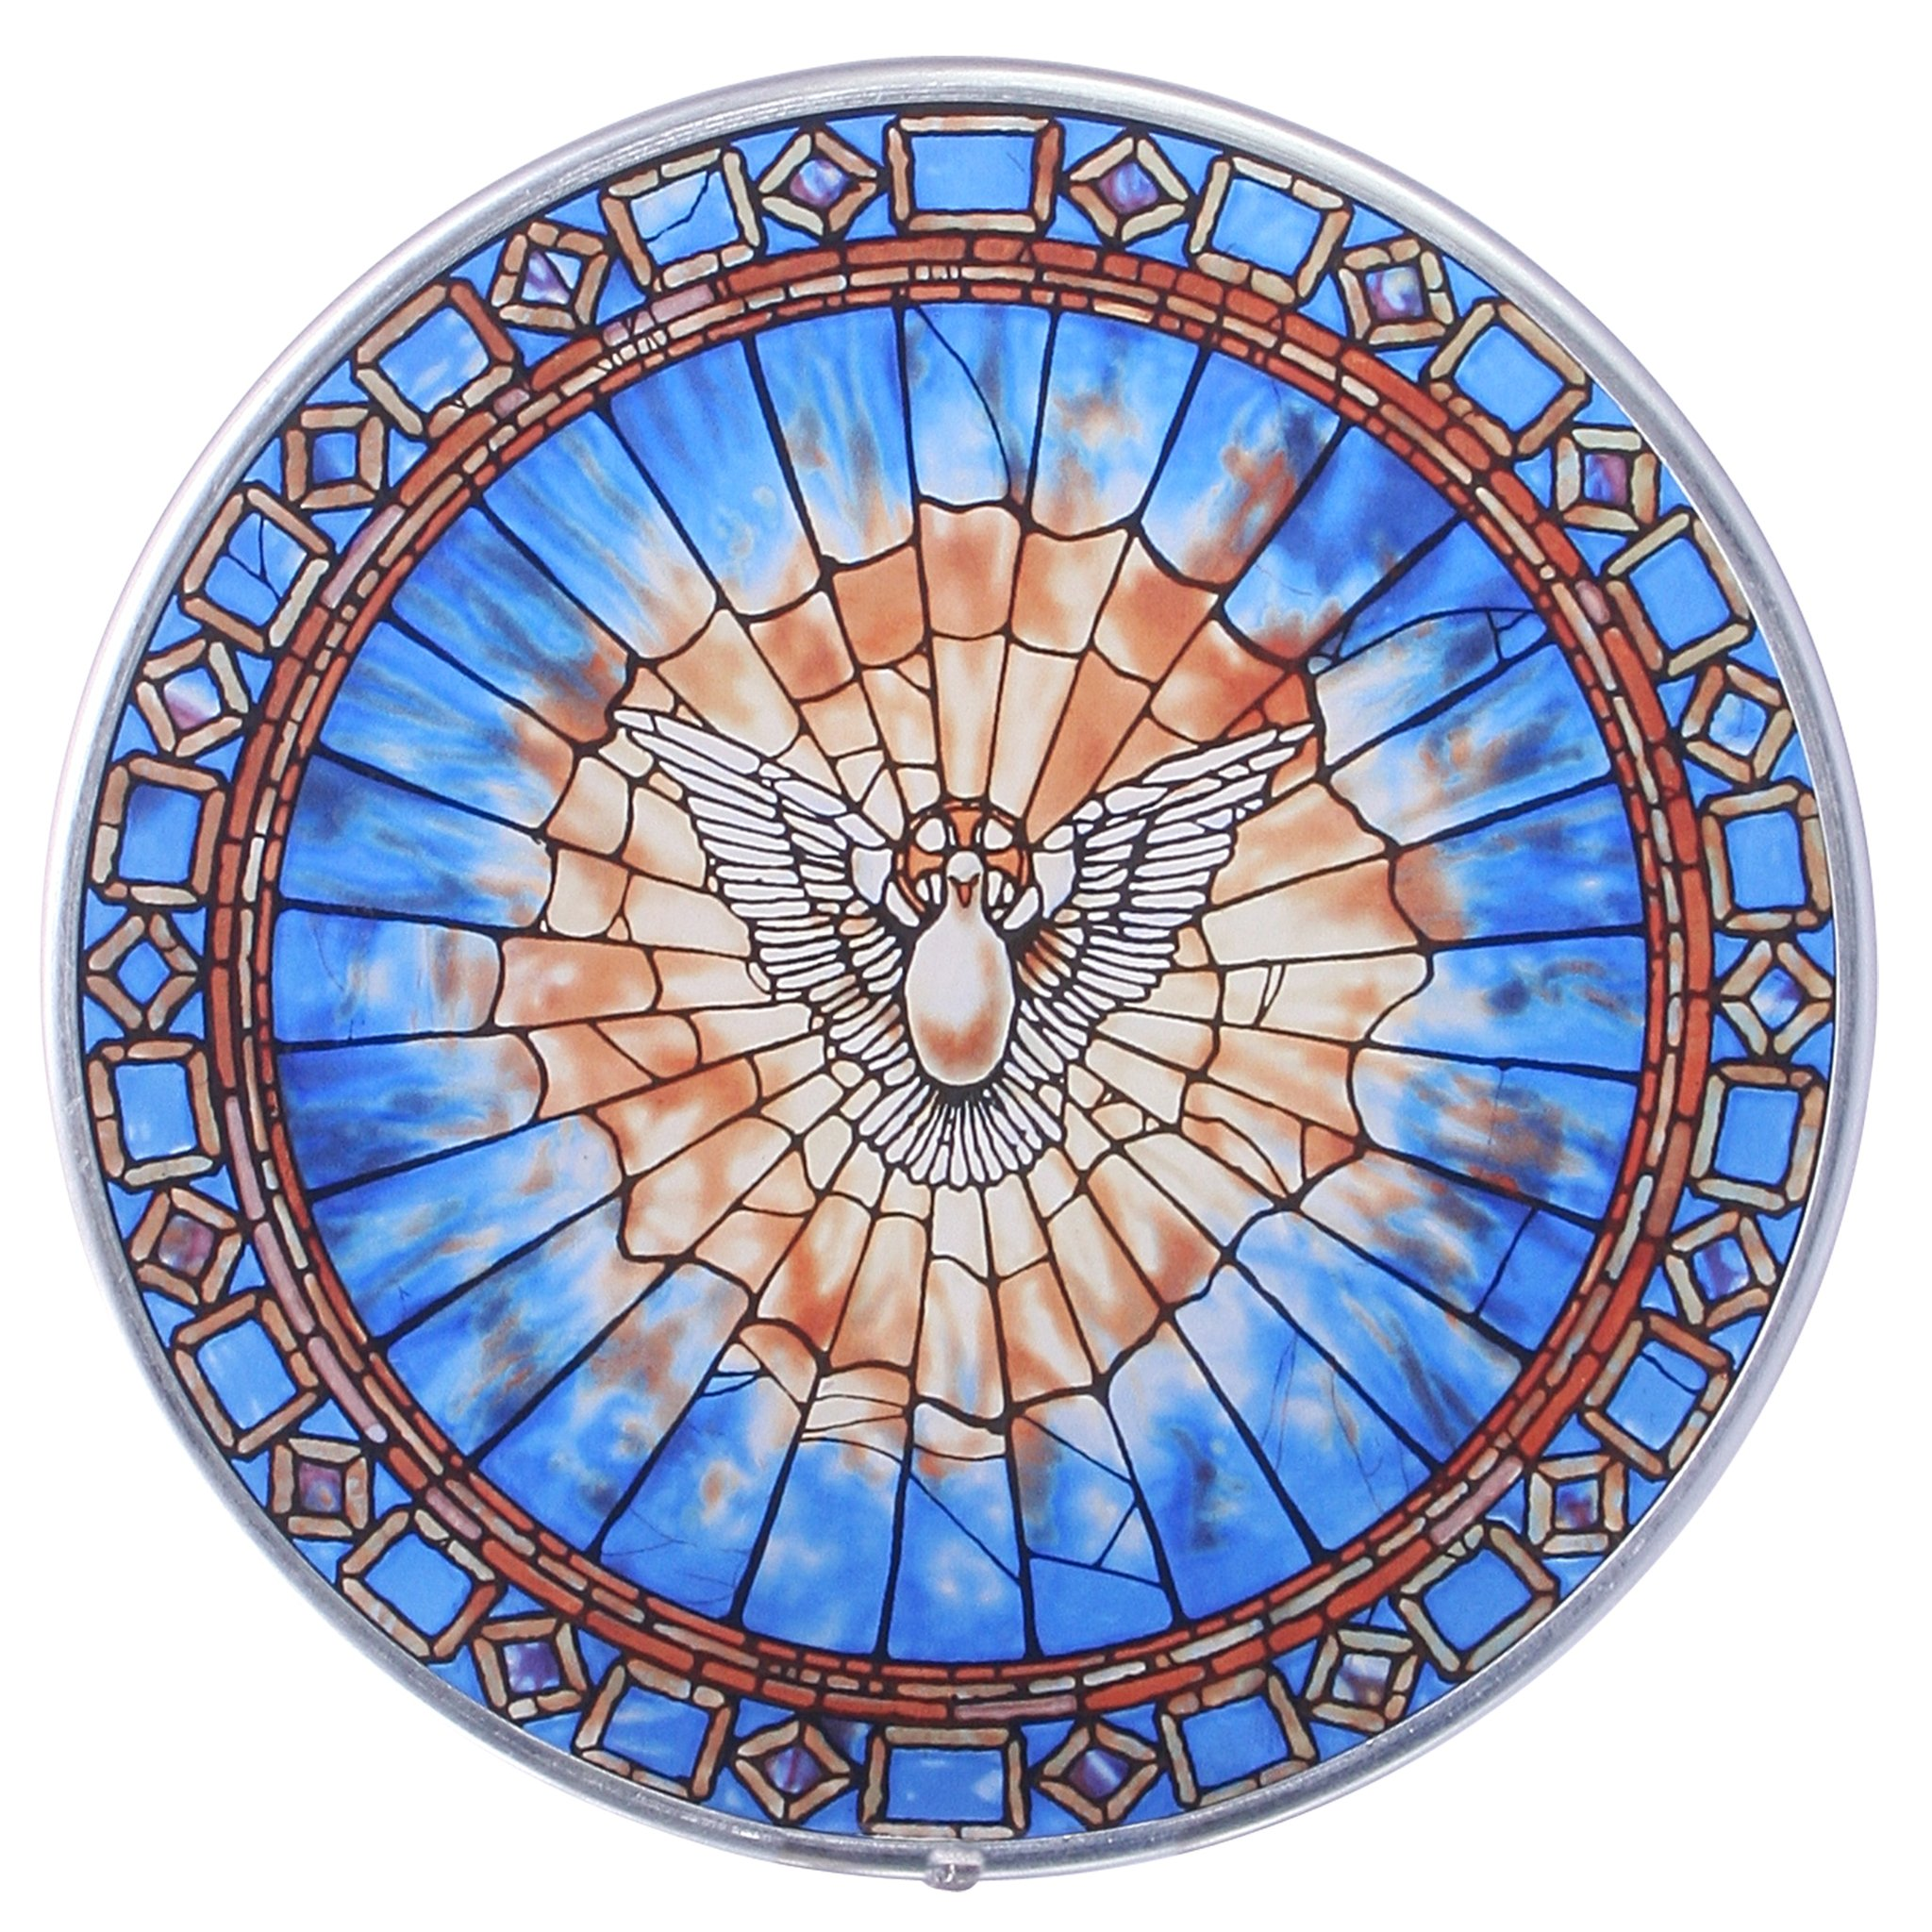 Stained Glass Panel - The Holy Spirit Round Stained Glass Window Hangings - Art Glass Window Treatments